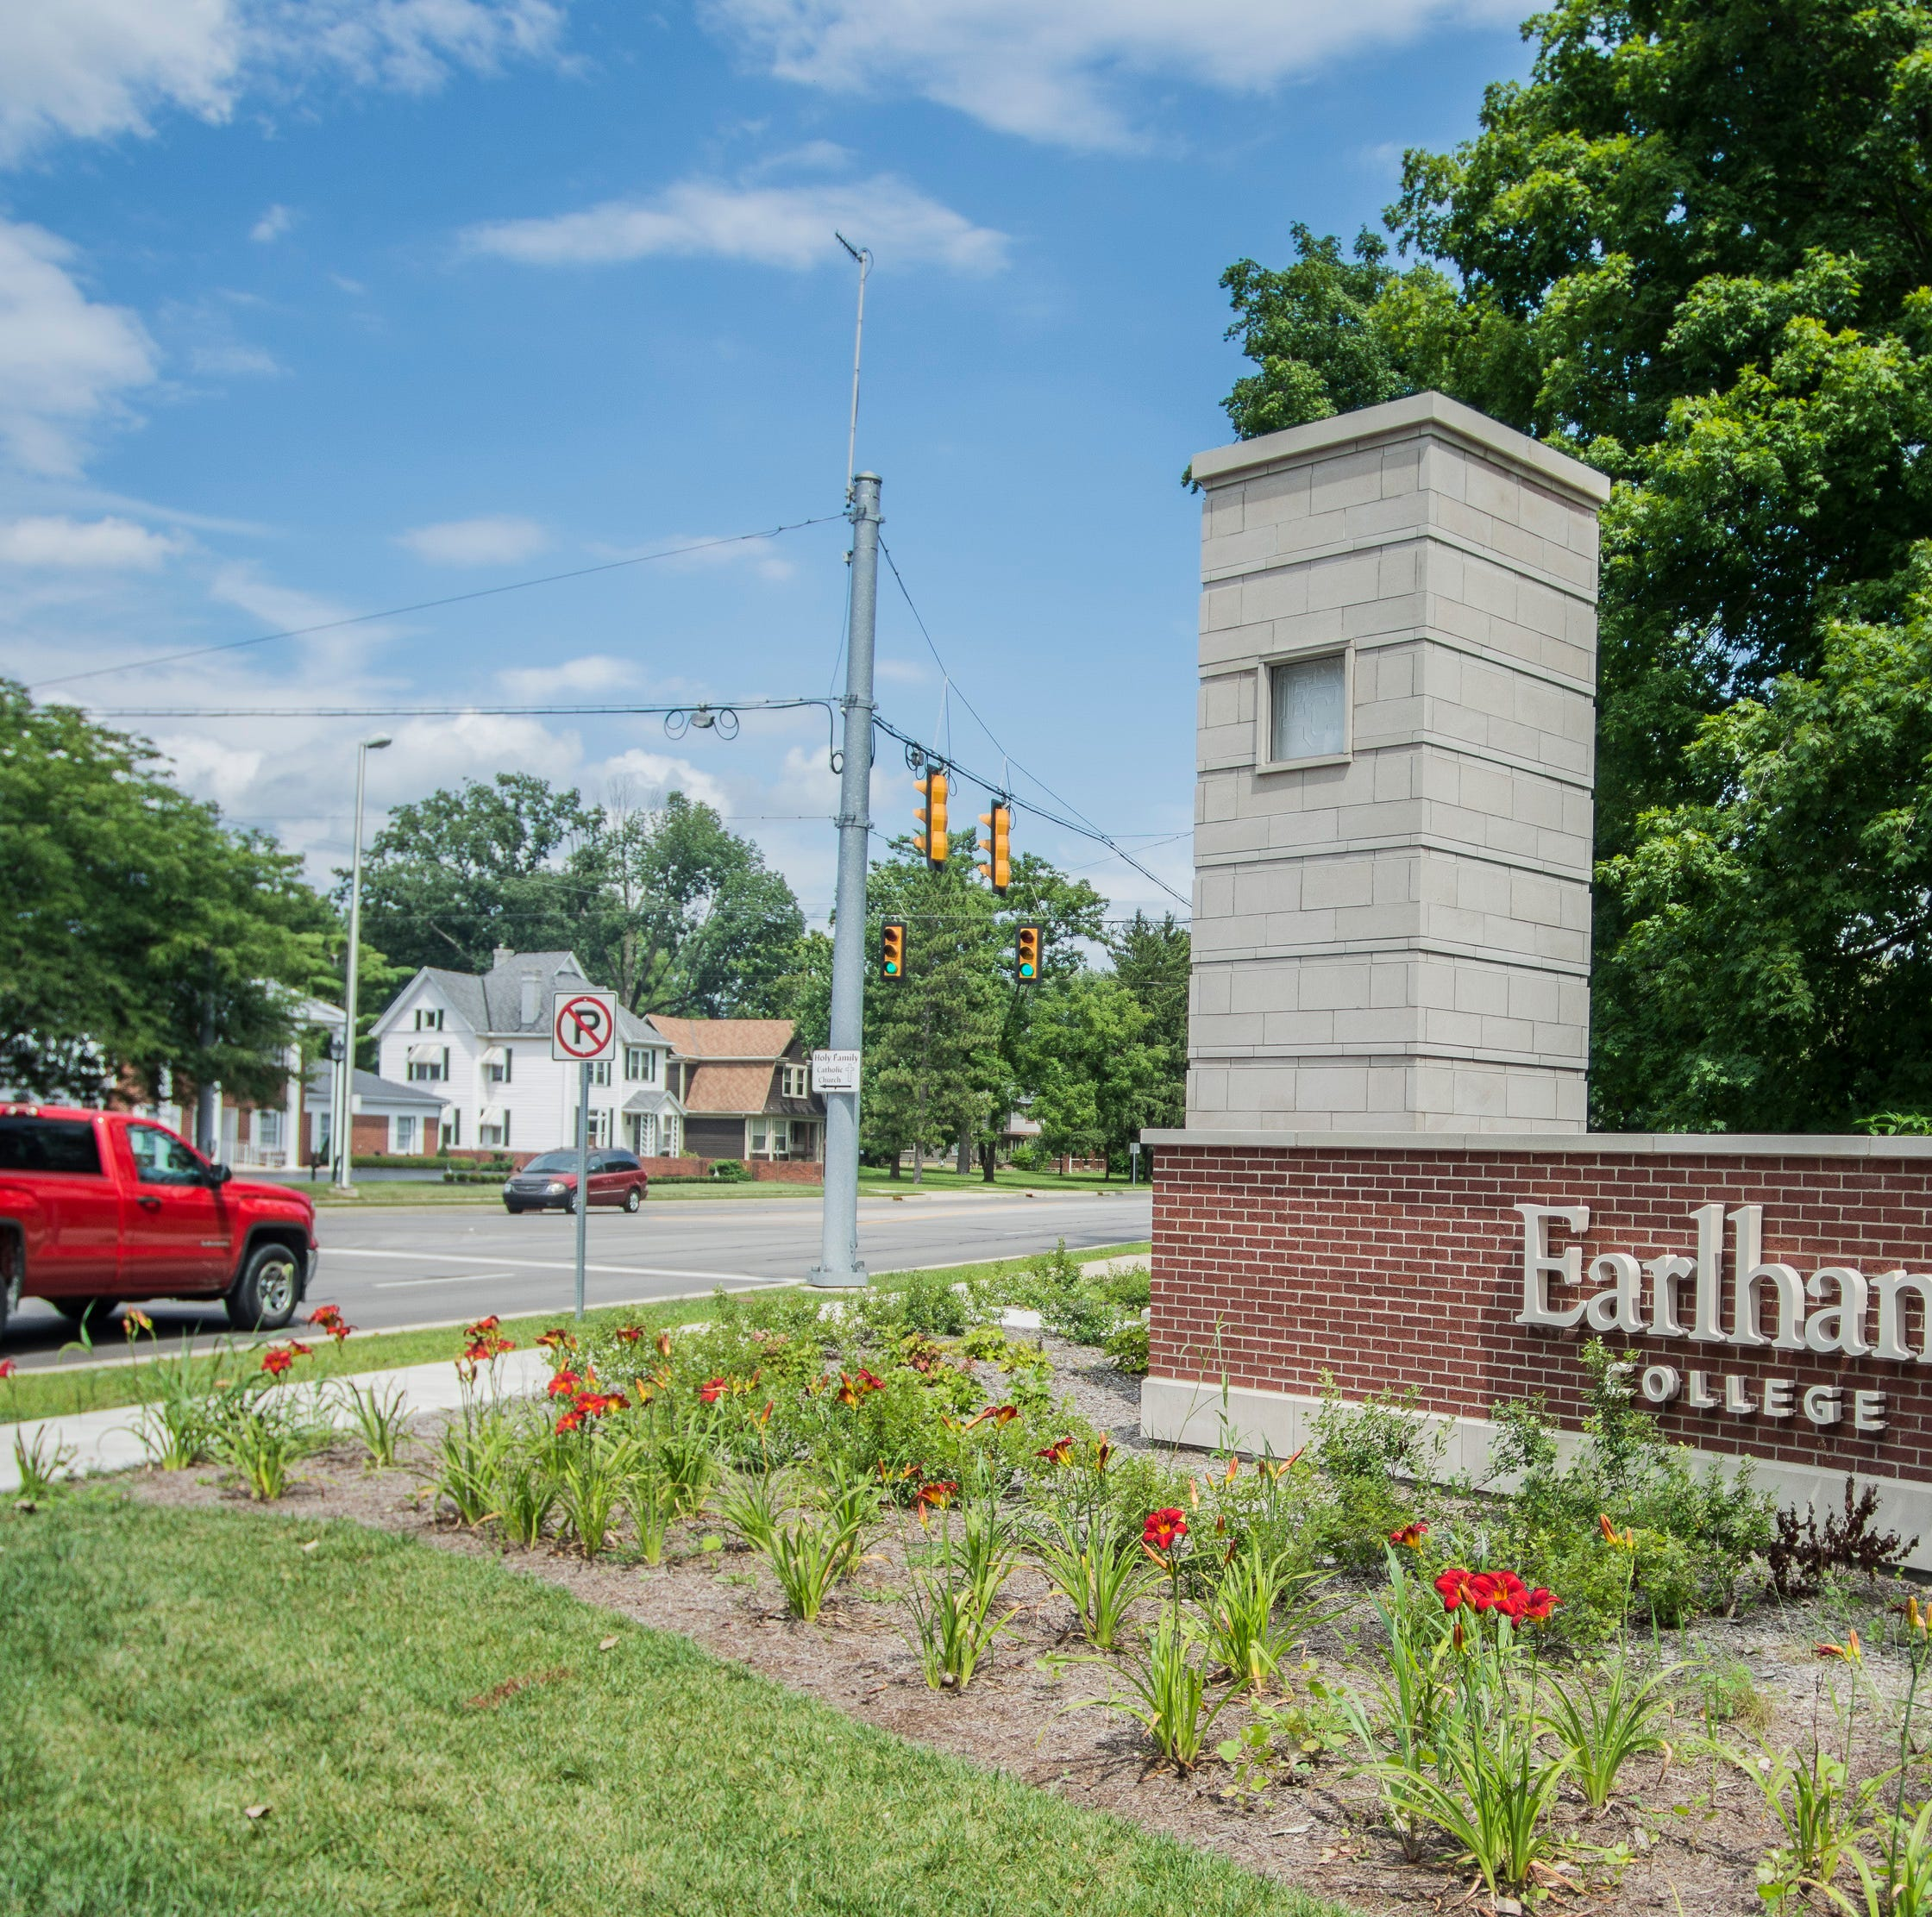 Amid financial strains, Earlham puts $100 million into campus updates